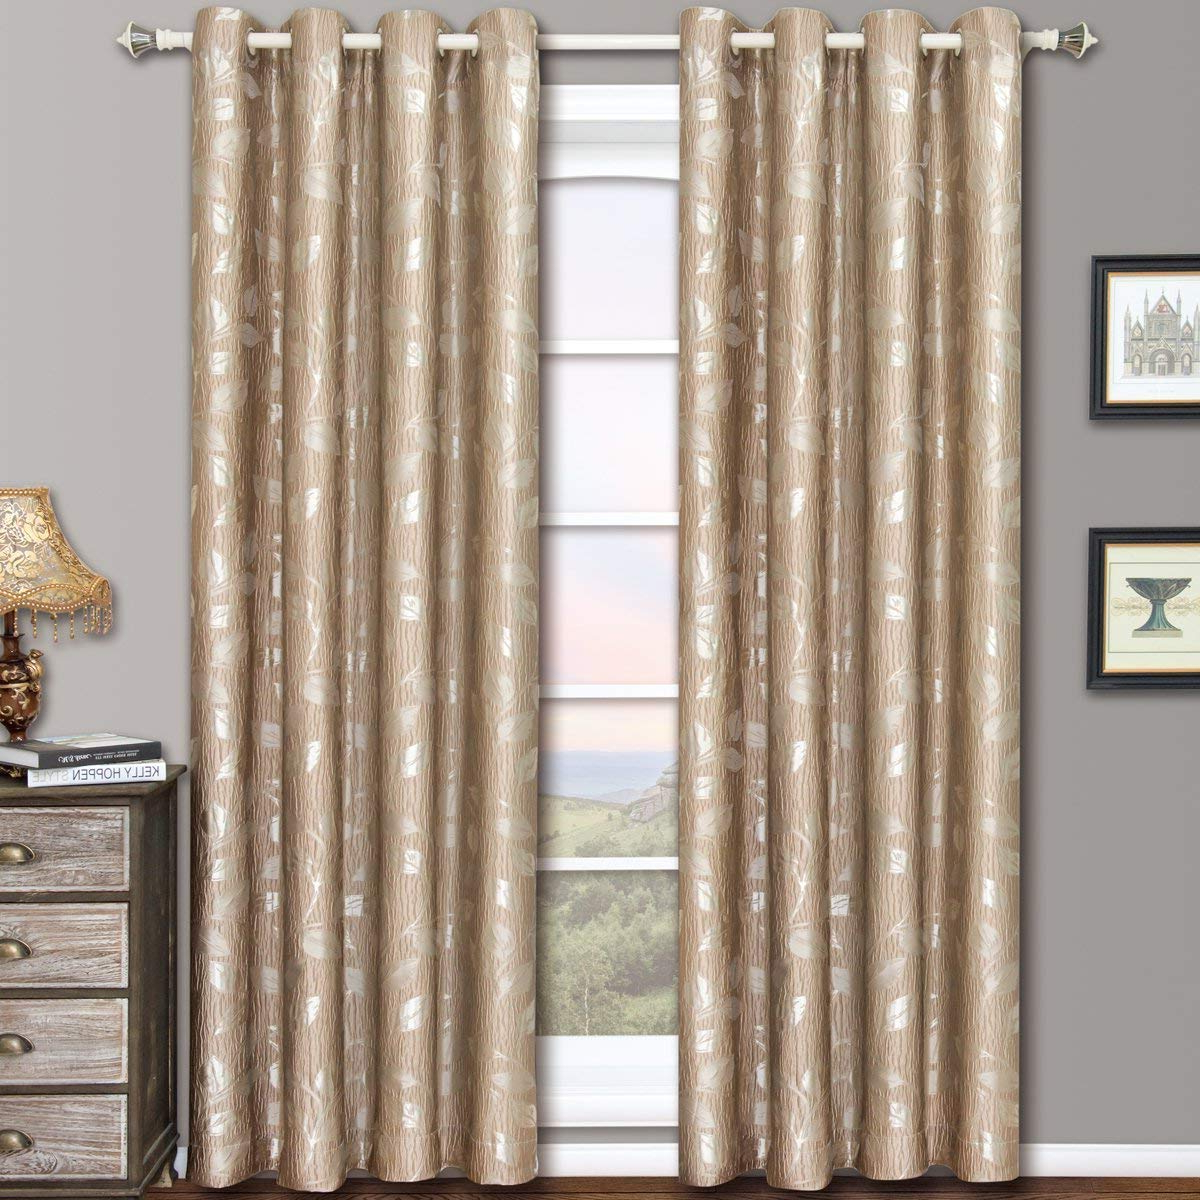 Charlotte Mocha Grommet Jacquard Window Curtain Panels, Pair / Set Of 2 Panels, 52x96 Inches Each,royal Hotel Inside Most Current Elegant Comfort Luxury Penelopie Jacquard Window Curtain Panel Pairs (View 11 of 20)